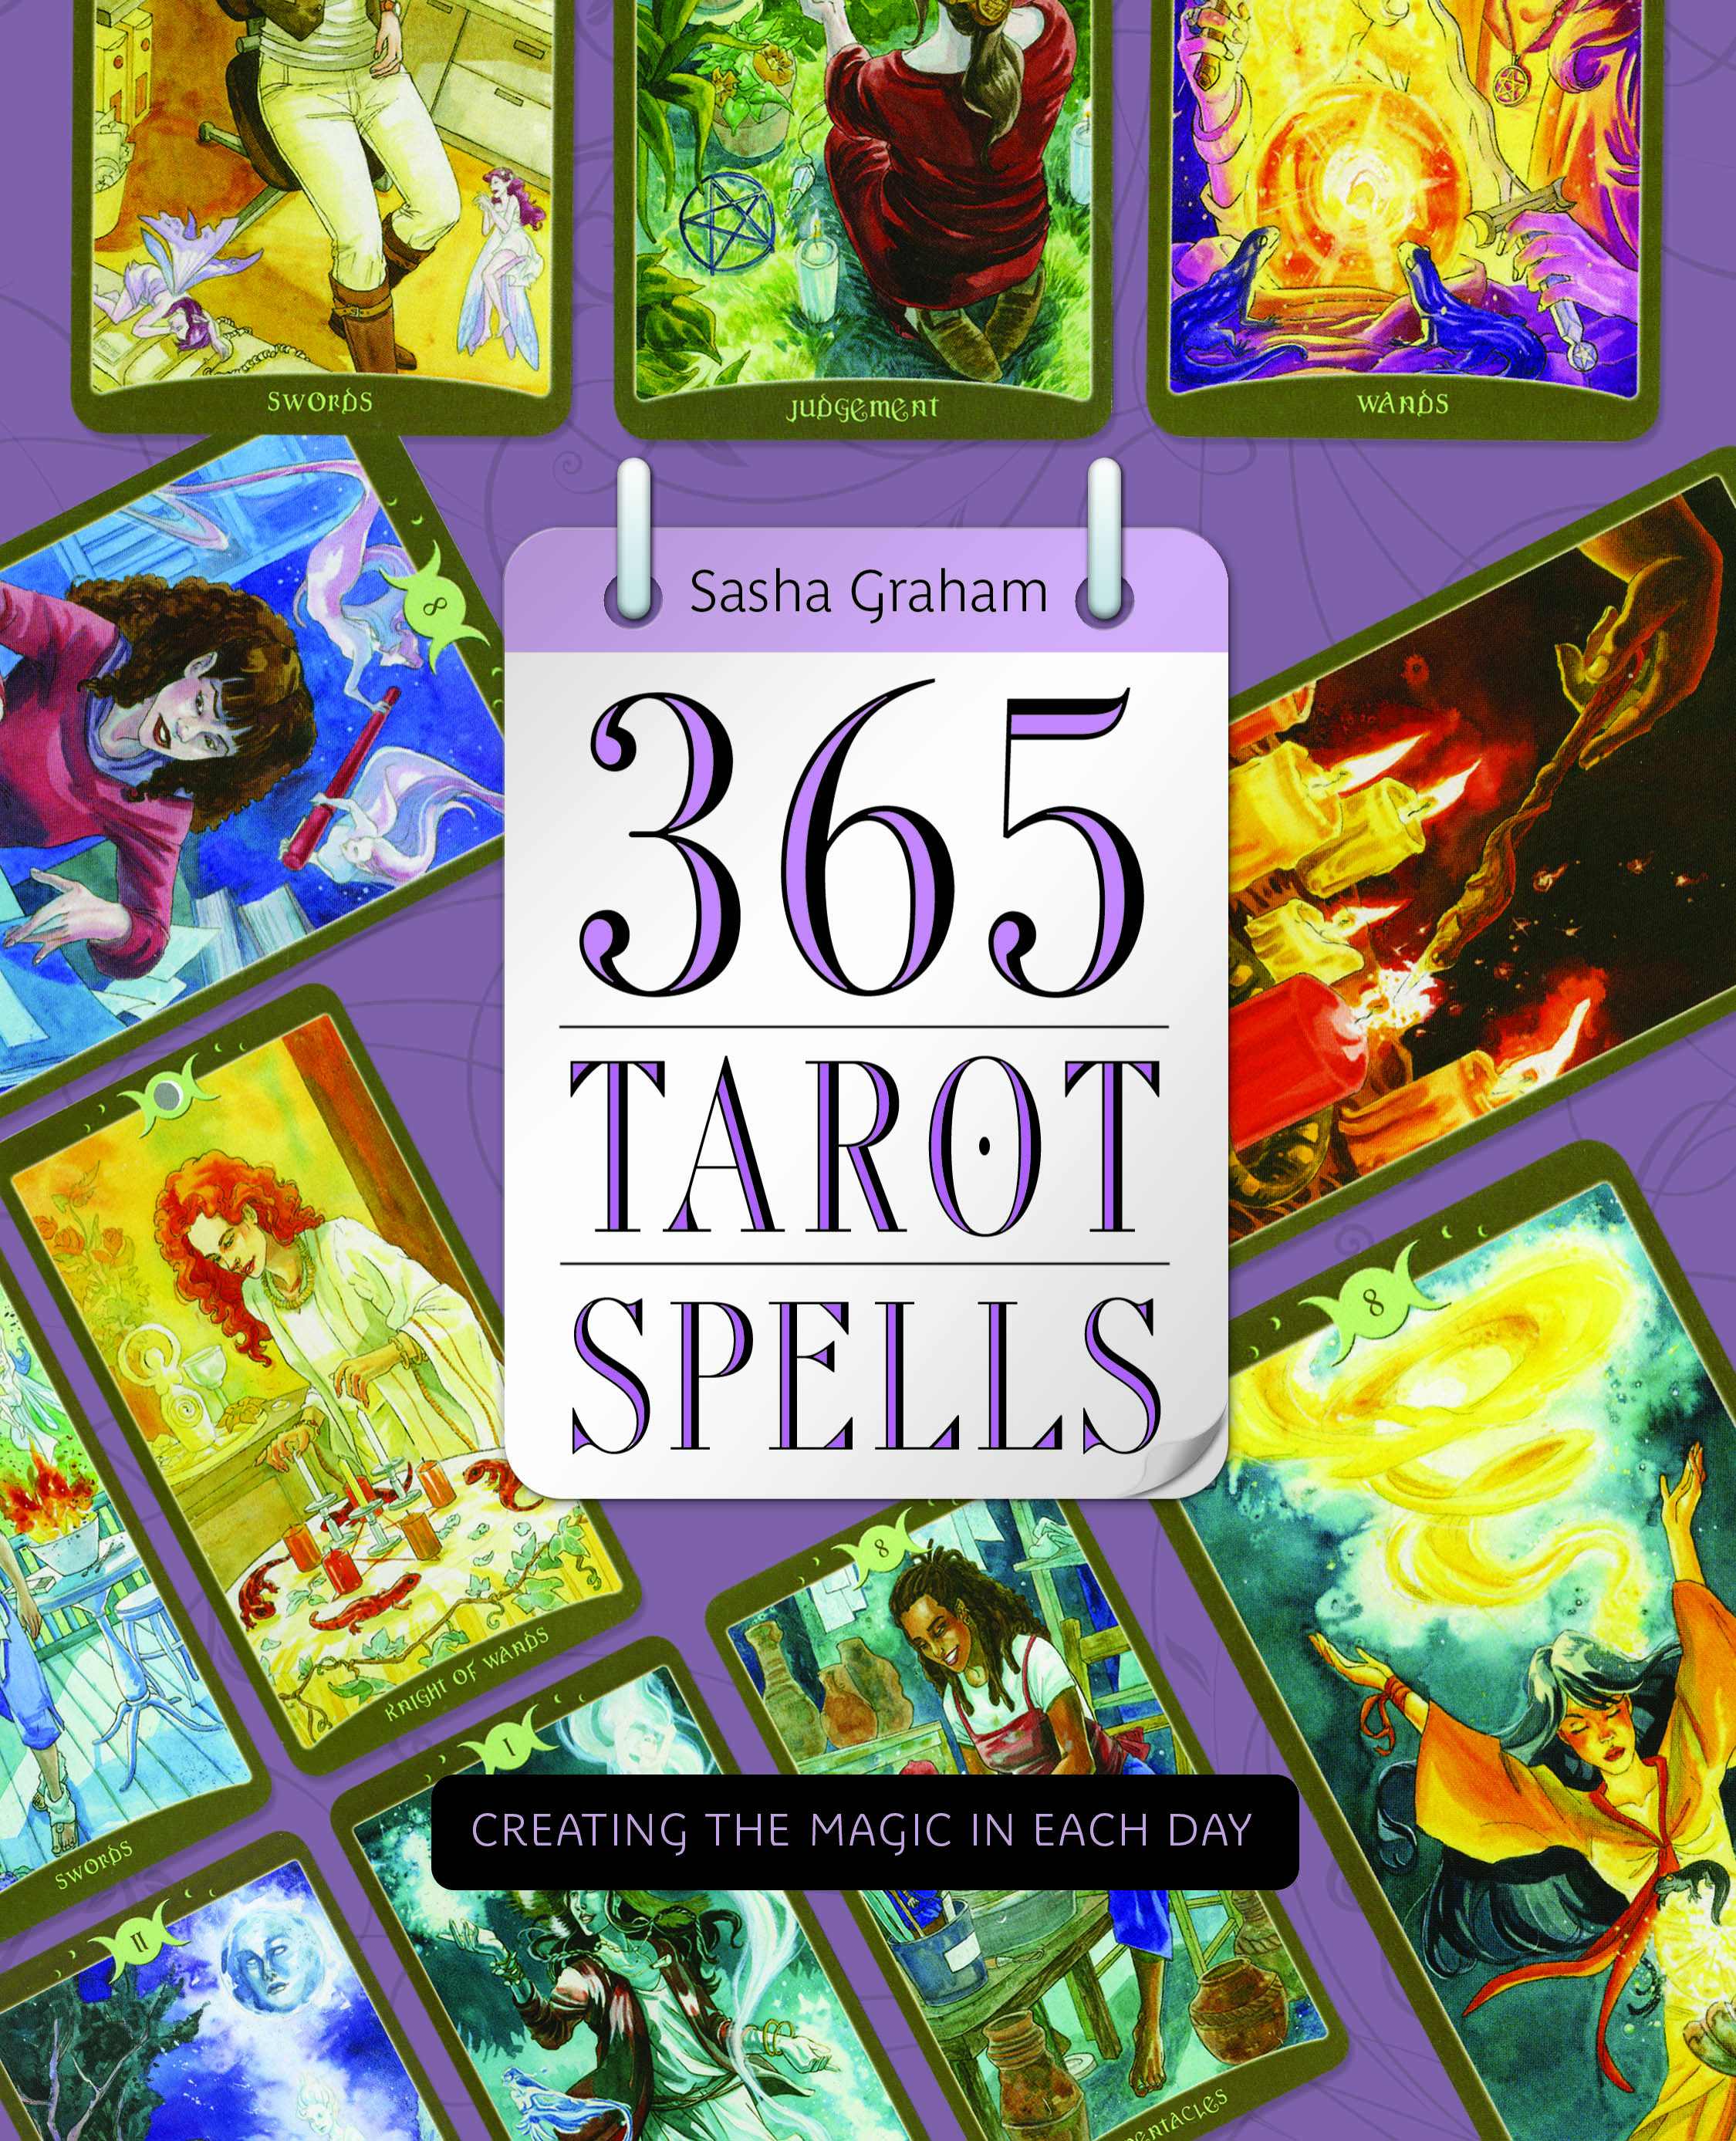 365 Tarot Spells available for preorder now!